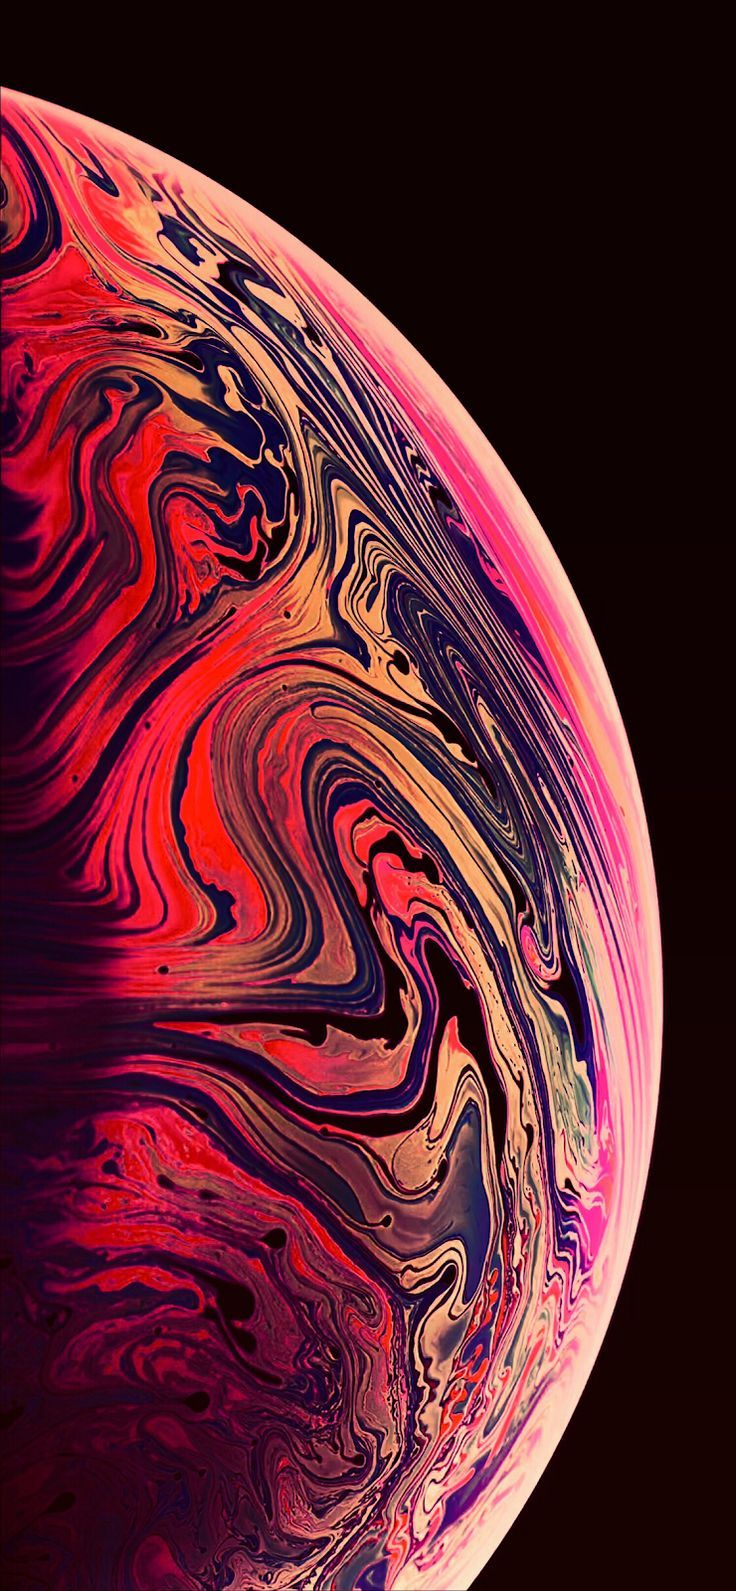 Iphone Wallpapers iPhone XS MAX Gradient Modd Wallpapers